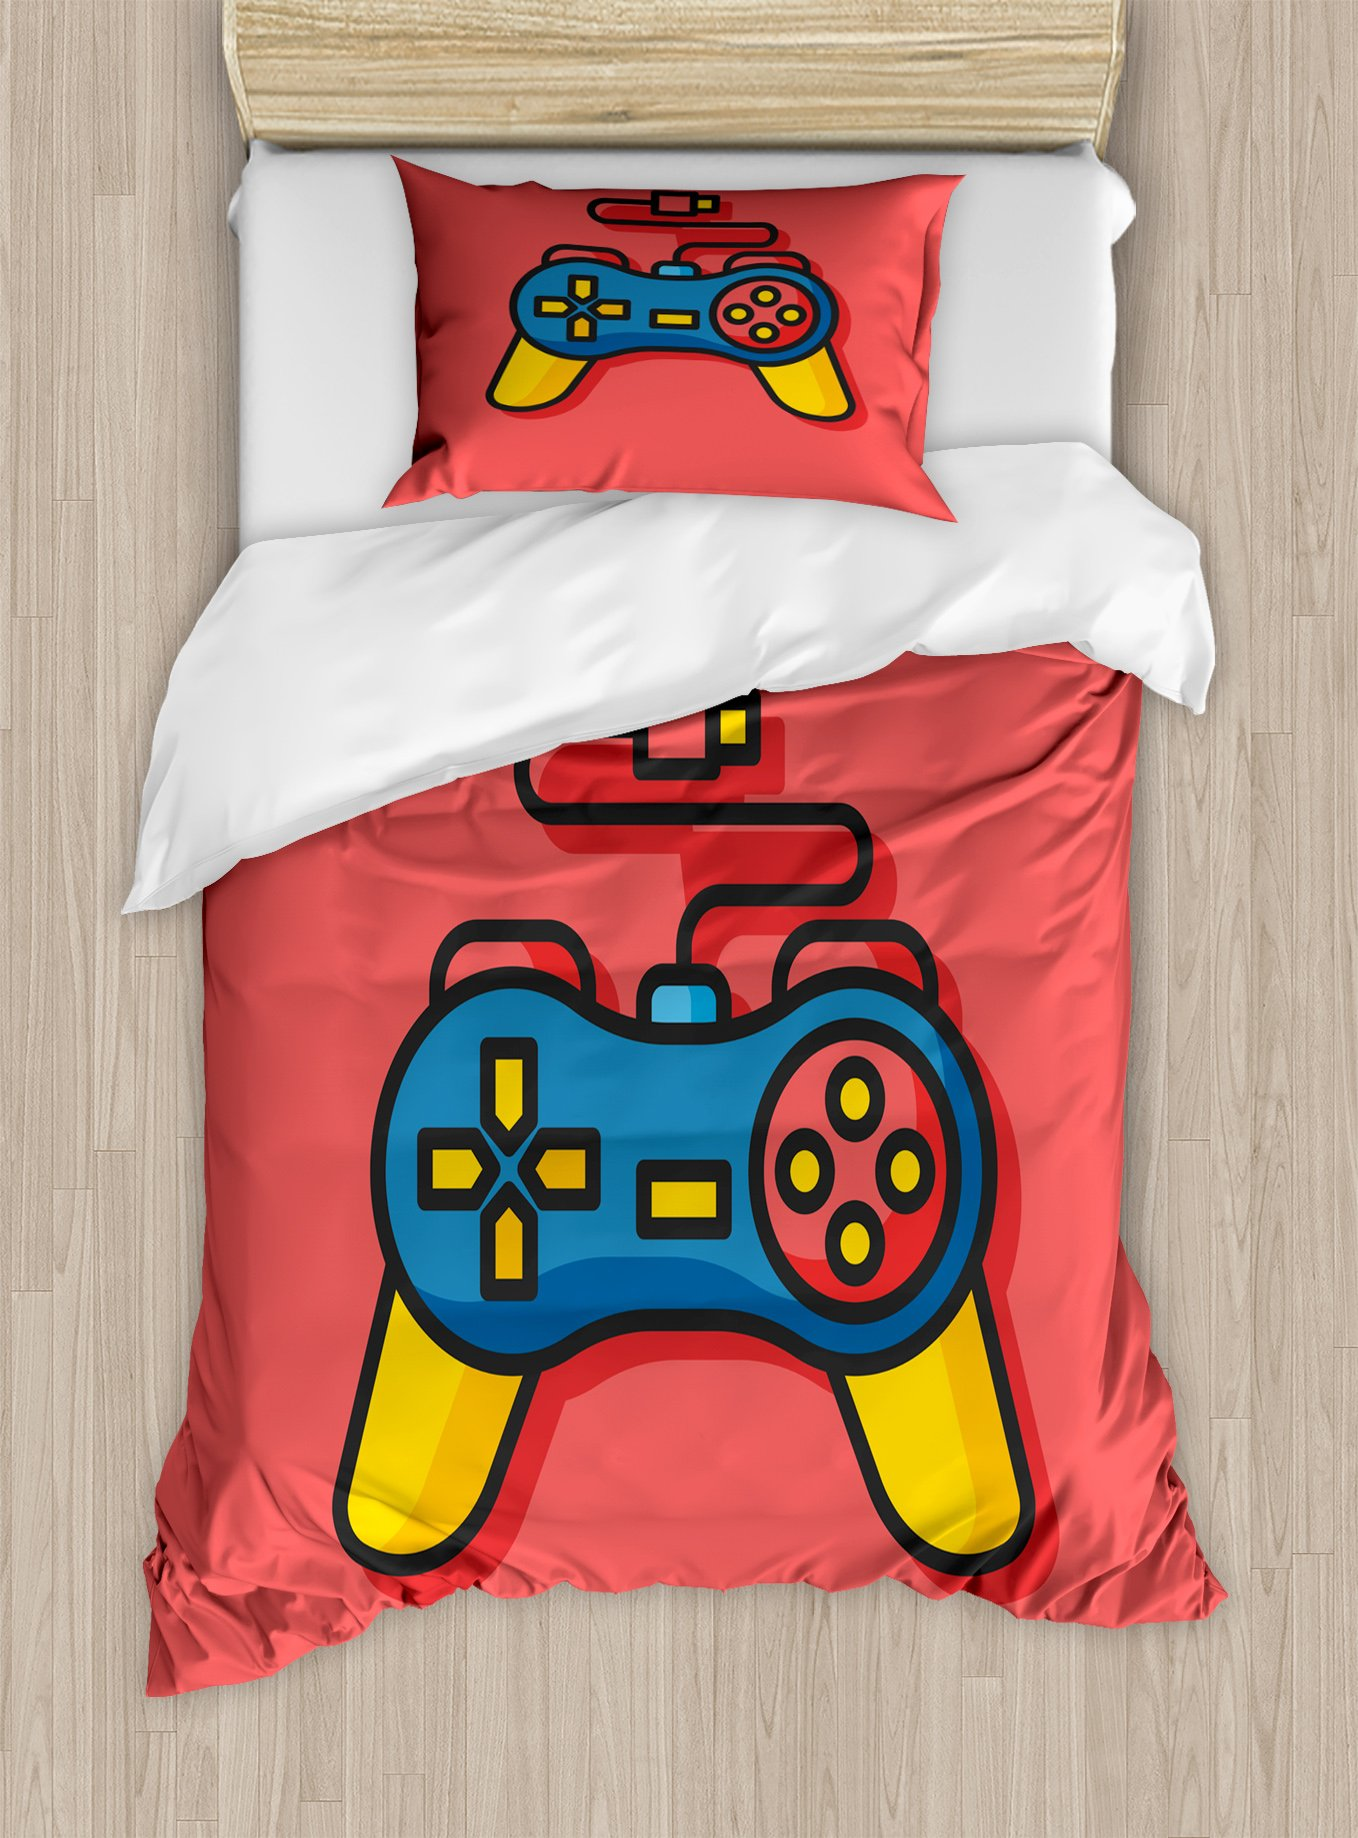 Lunarable Gamer Twin Size Duvet Cover Set, Old School Colorful Videogame Controller with Minimalist Style D-Pad and Triggers, Decorative 2 Piece Bedding Set with 1 Pillow Sham, Multicolor